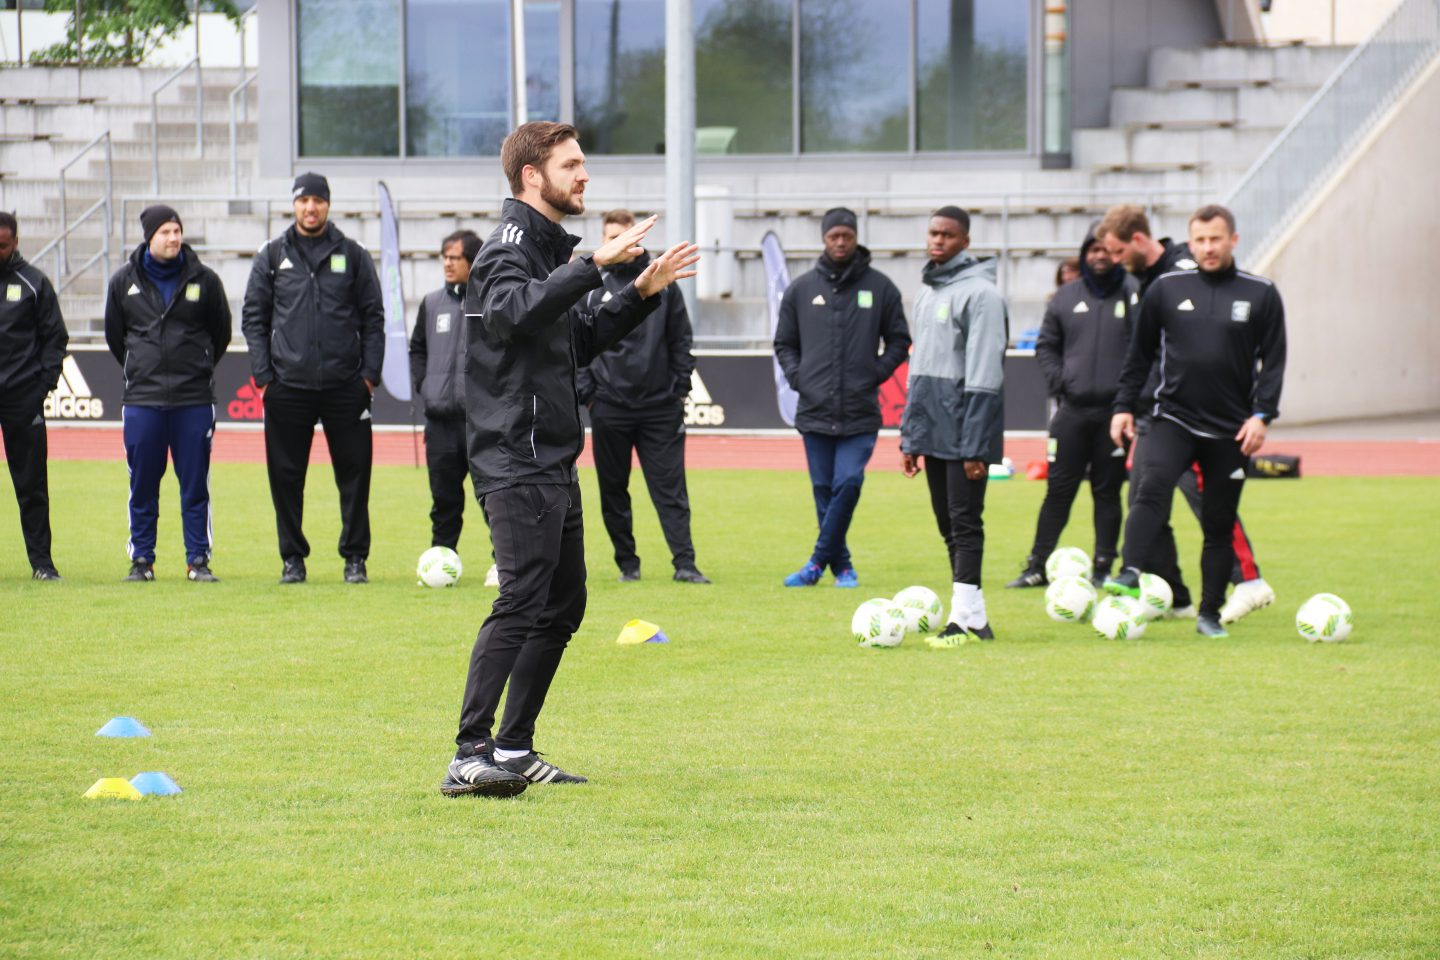 Coerver coach in action on the football pitch - coaching teams